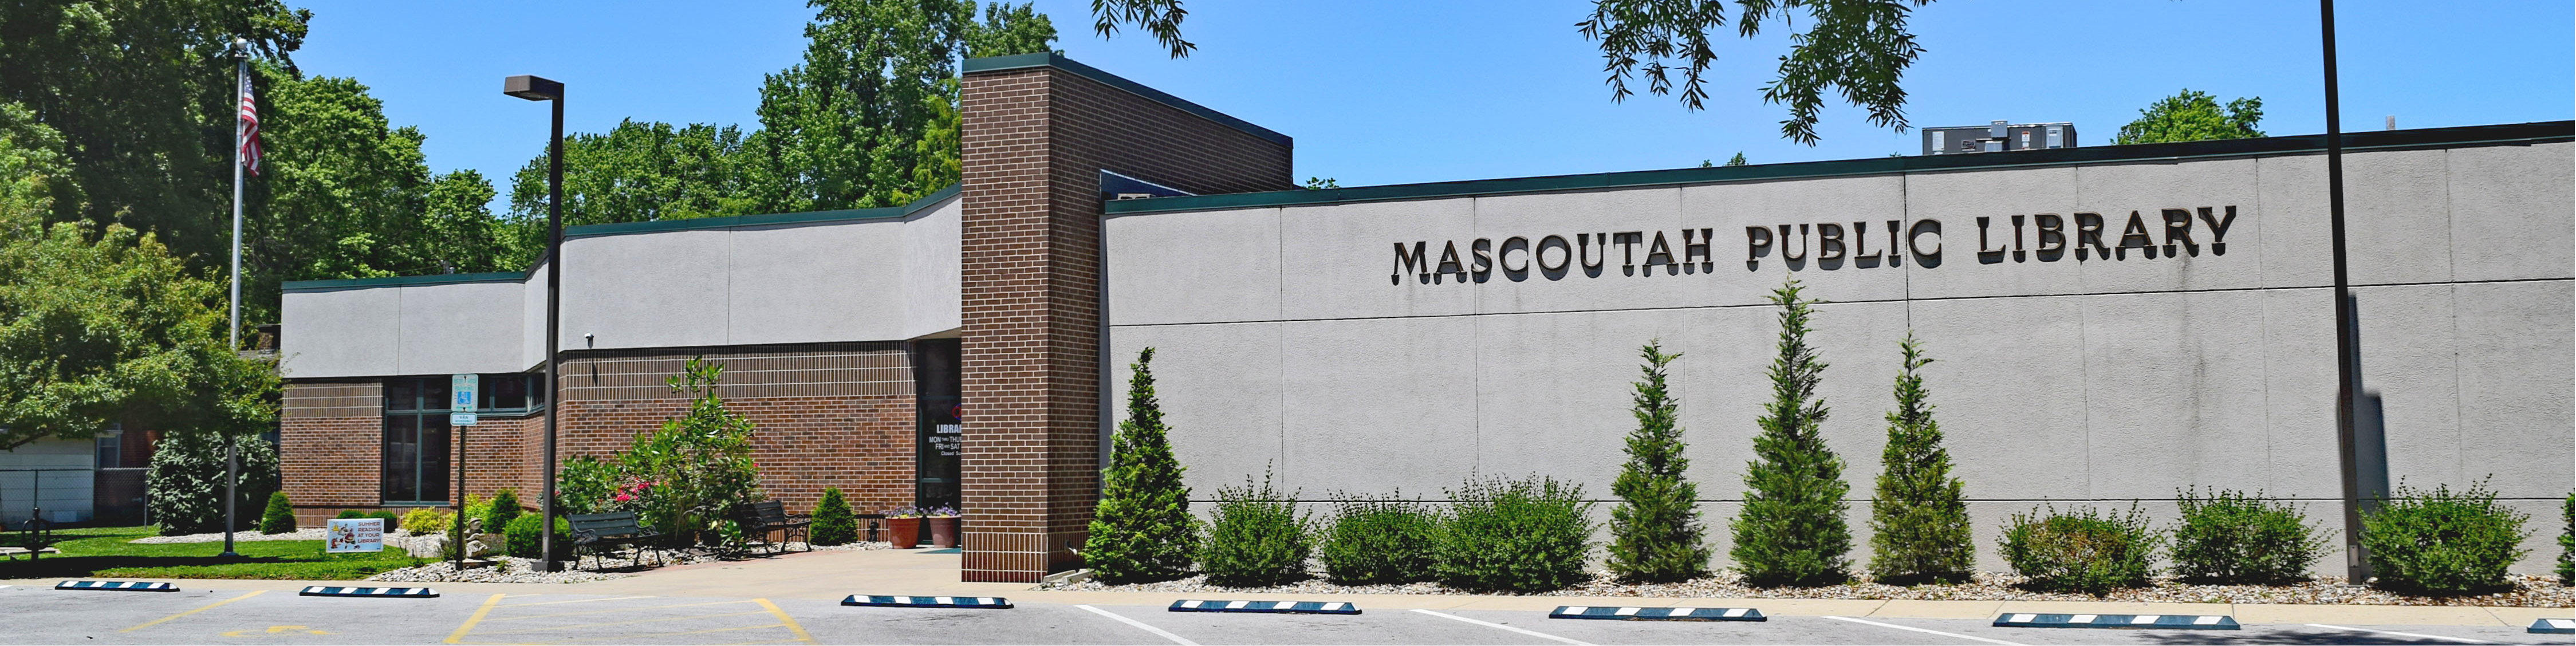 Mascoutah Public Library